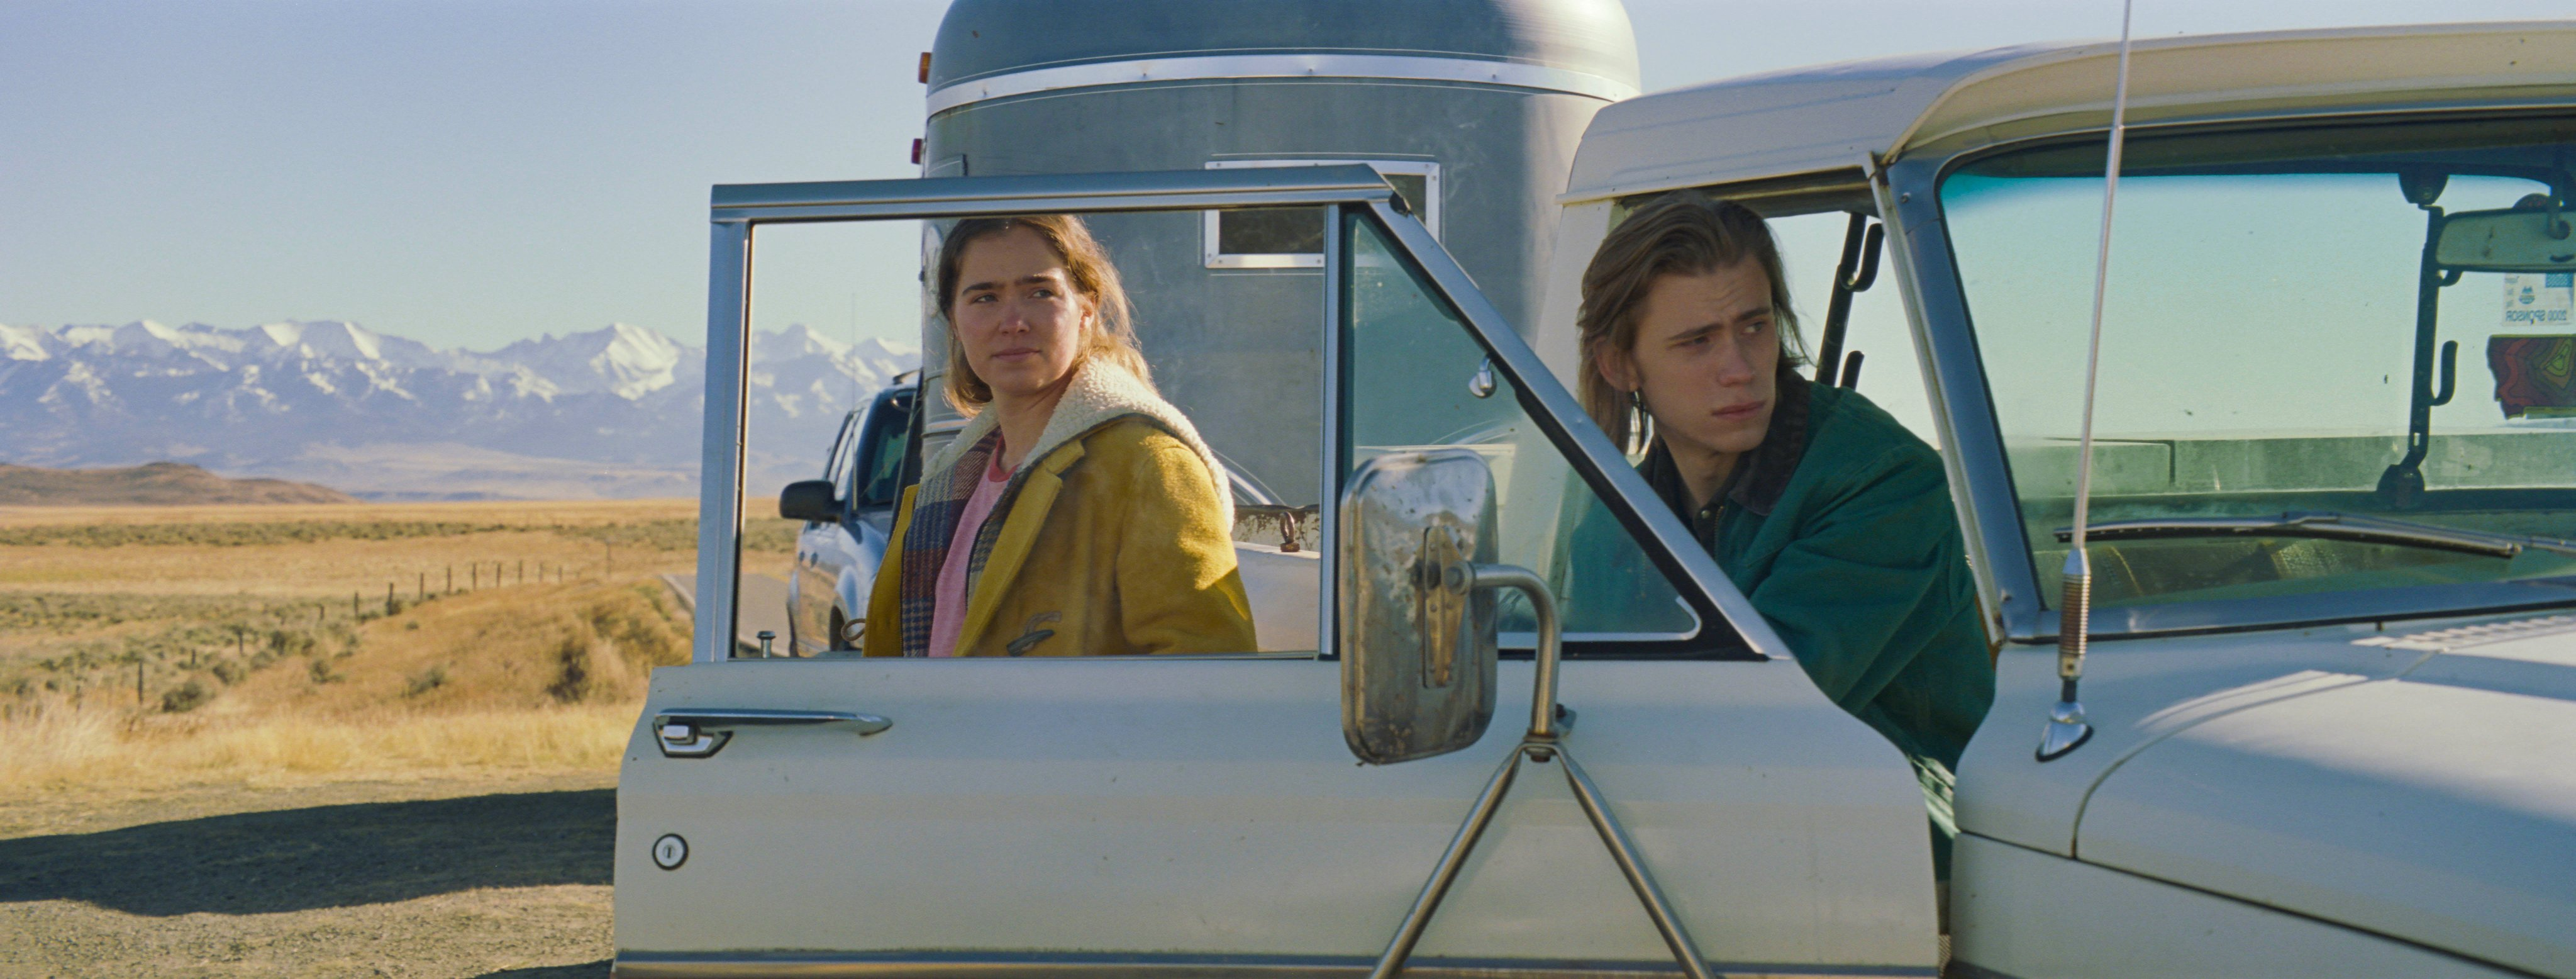 Haley Lu Richardson stands next to Owen Teague sitting in a white pick-up truck with the door open, in a field with a blue silo behind them.